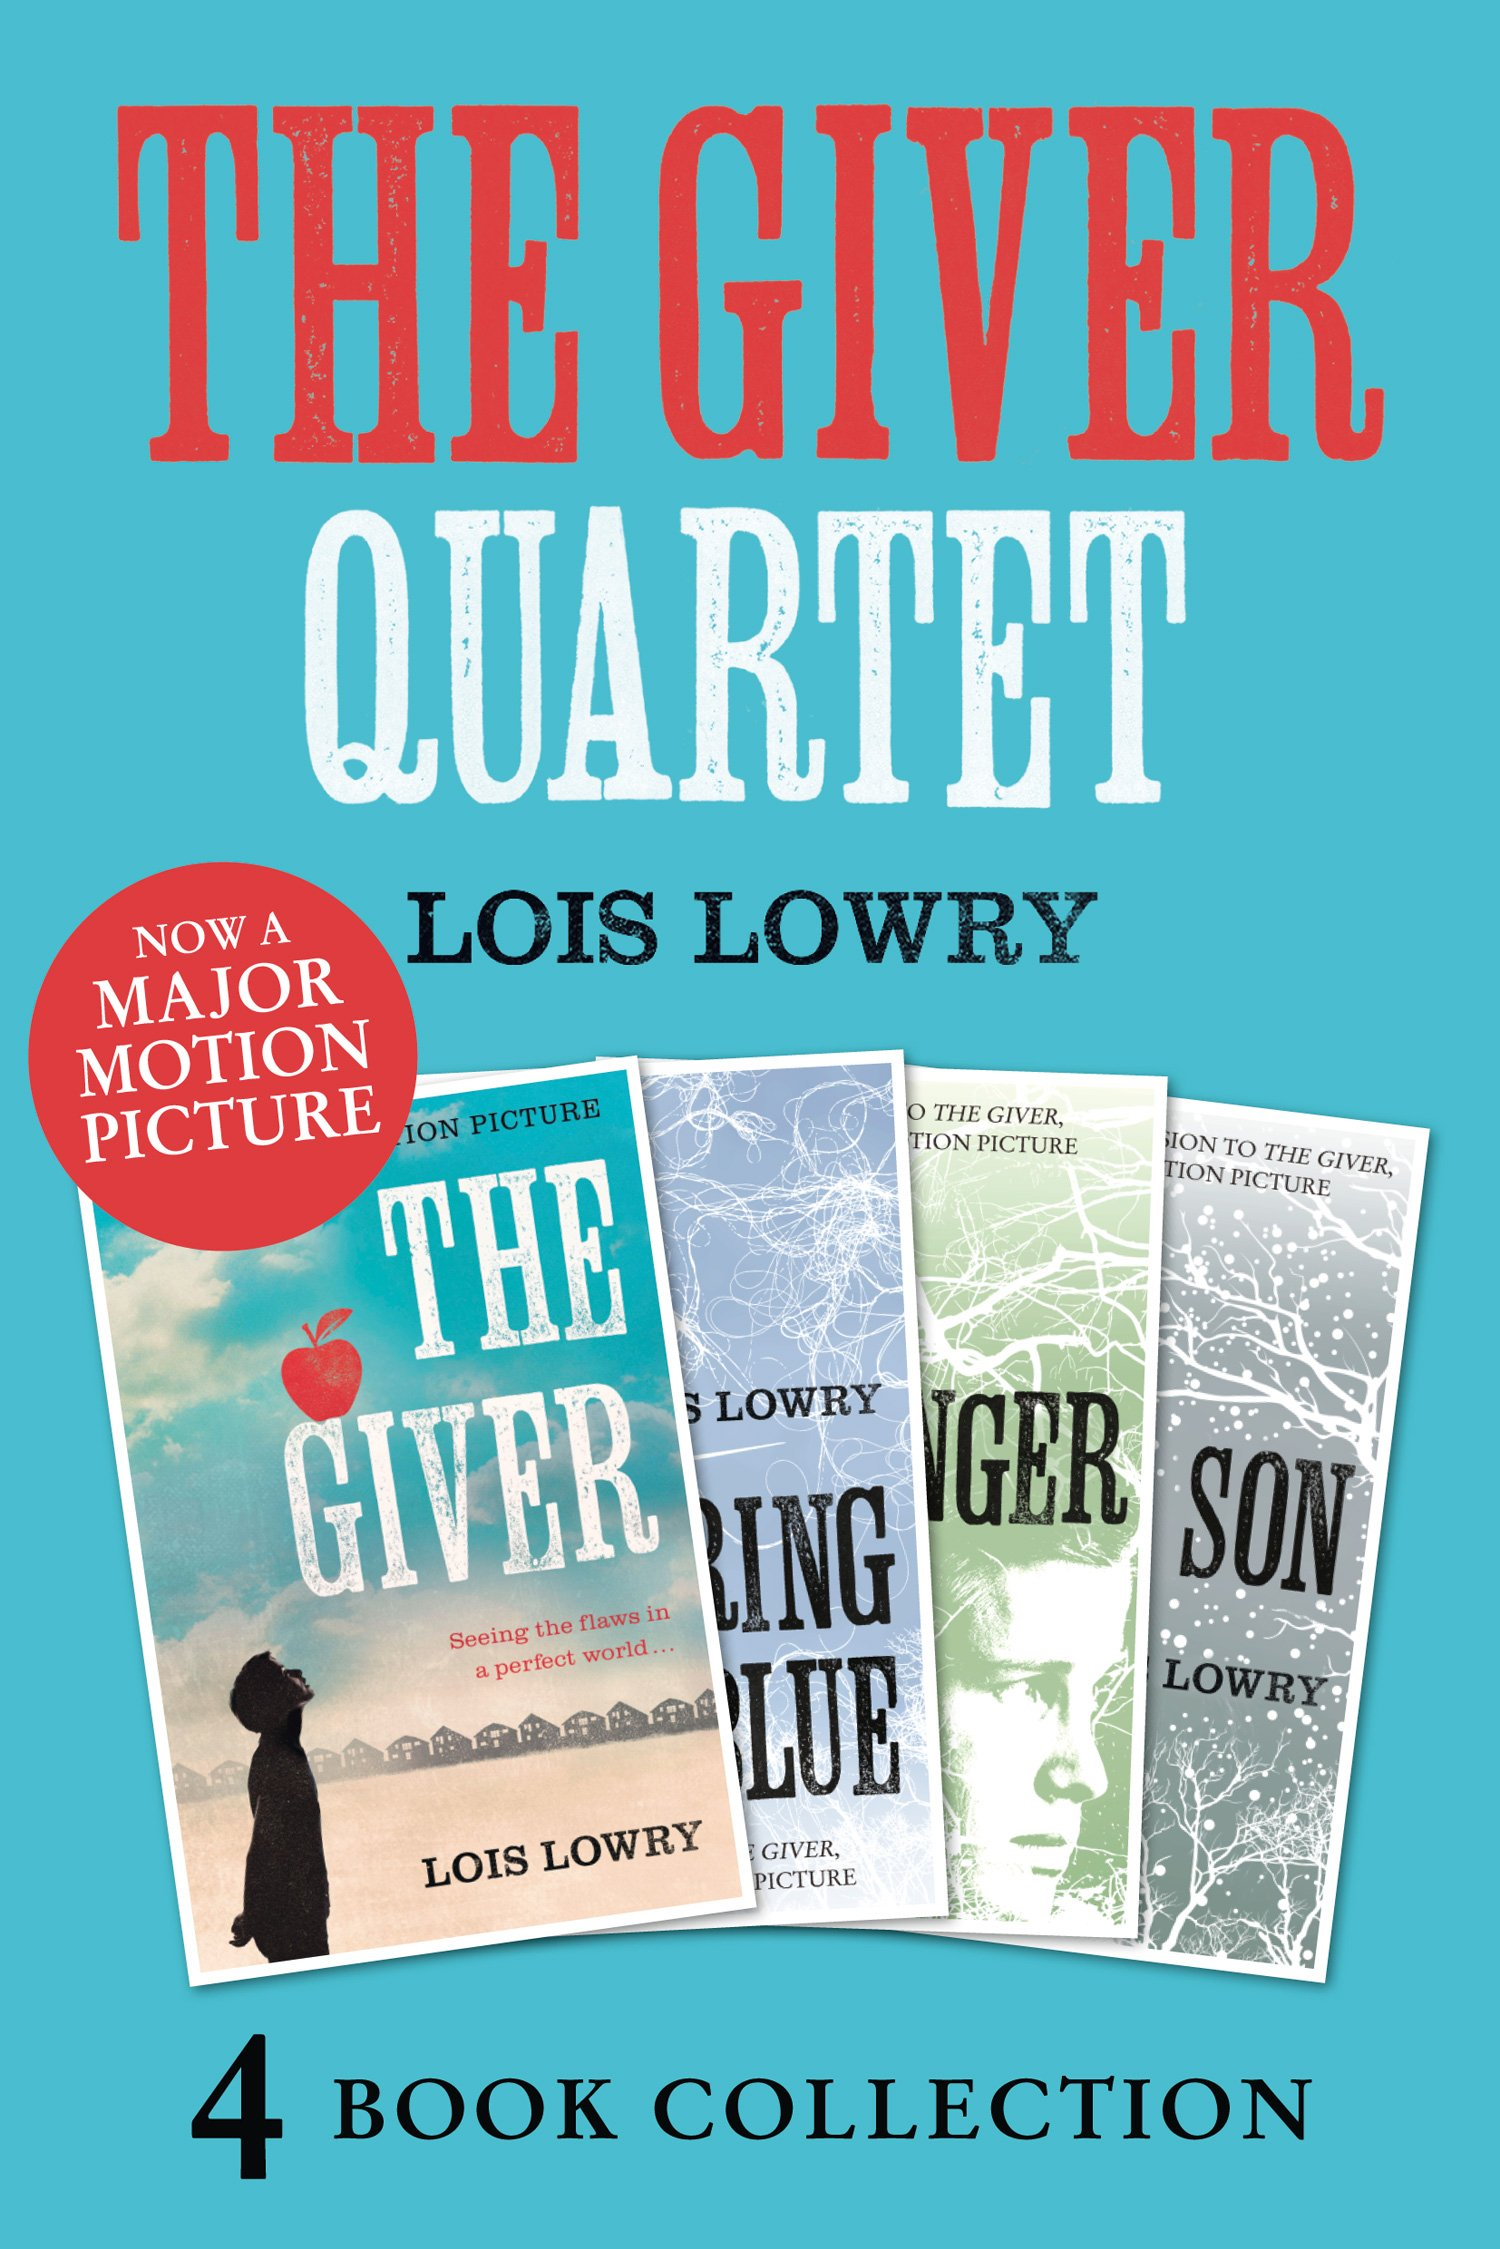 The Giver Gathering Blue Messenger Son (The Giver Quartet) (English Edition)